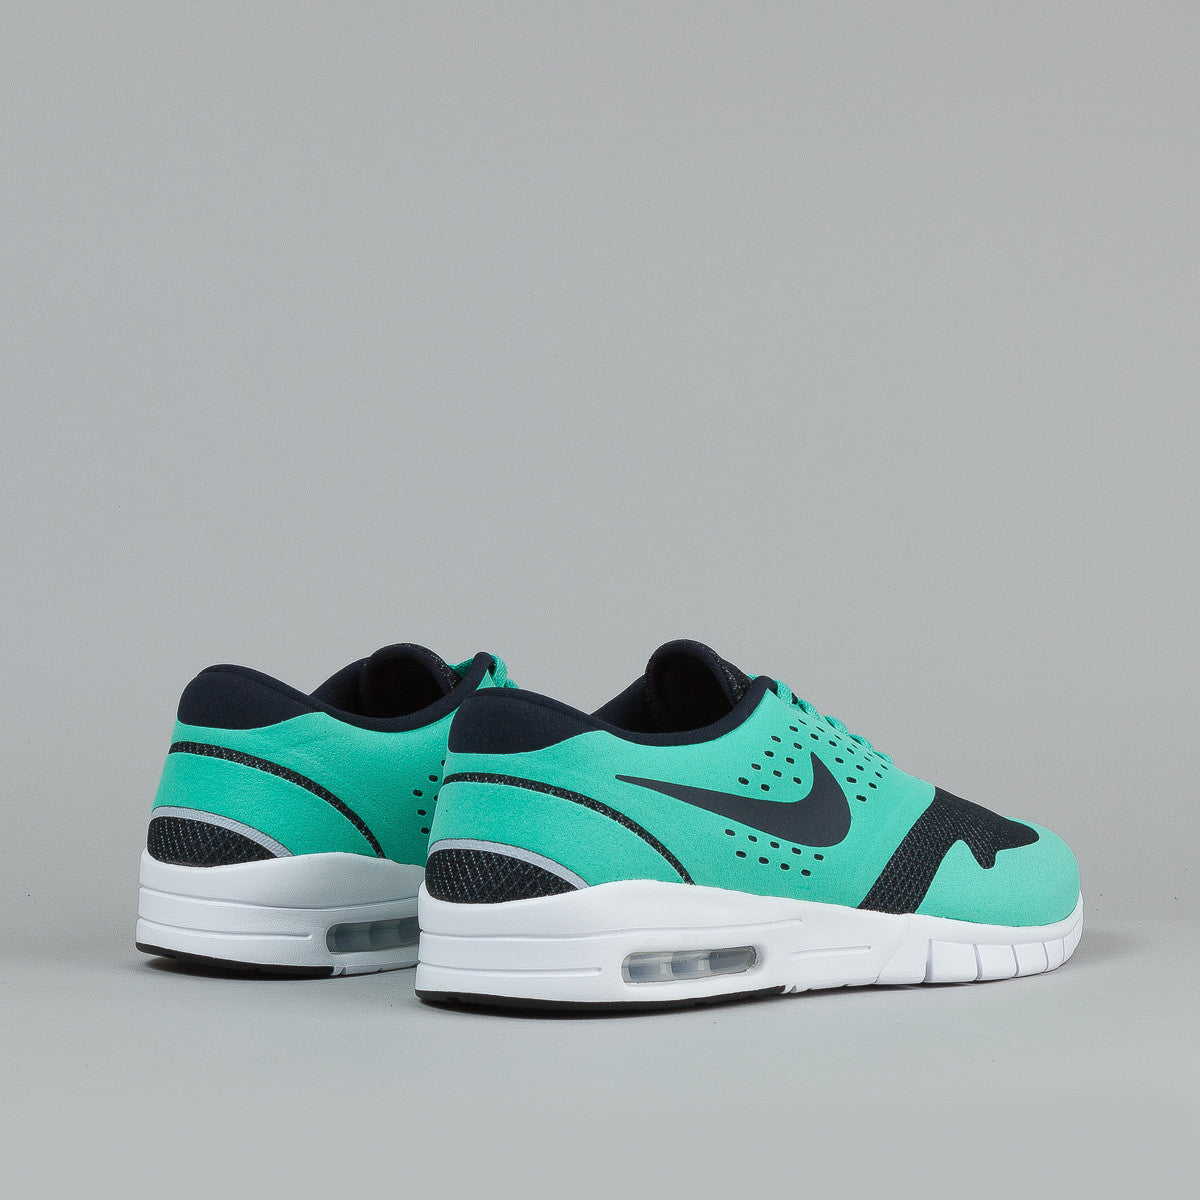 Nike SB Eric Koston 2 Max Crystal Mint / Dark Obsidian - Wolf Grey